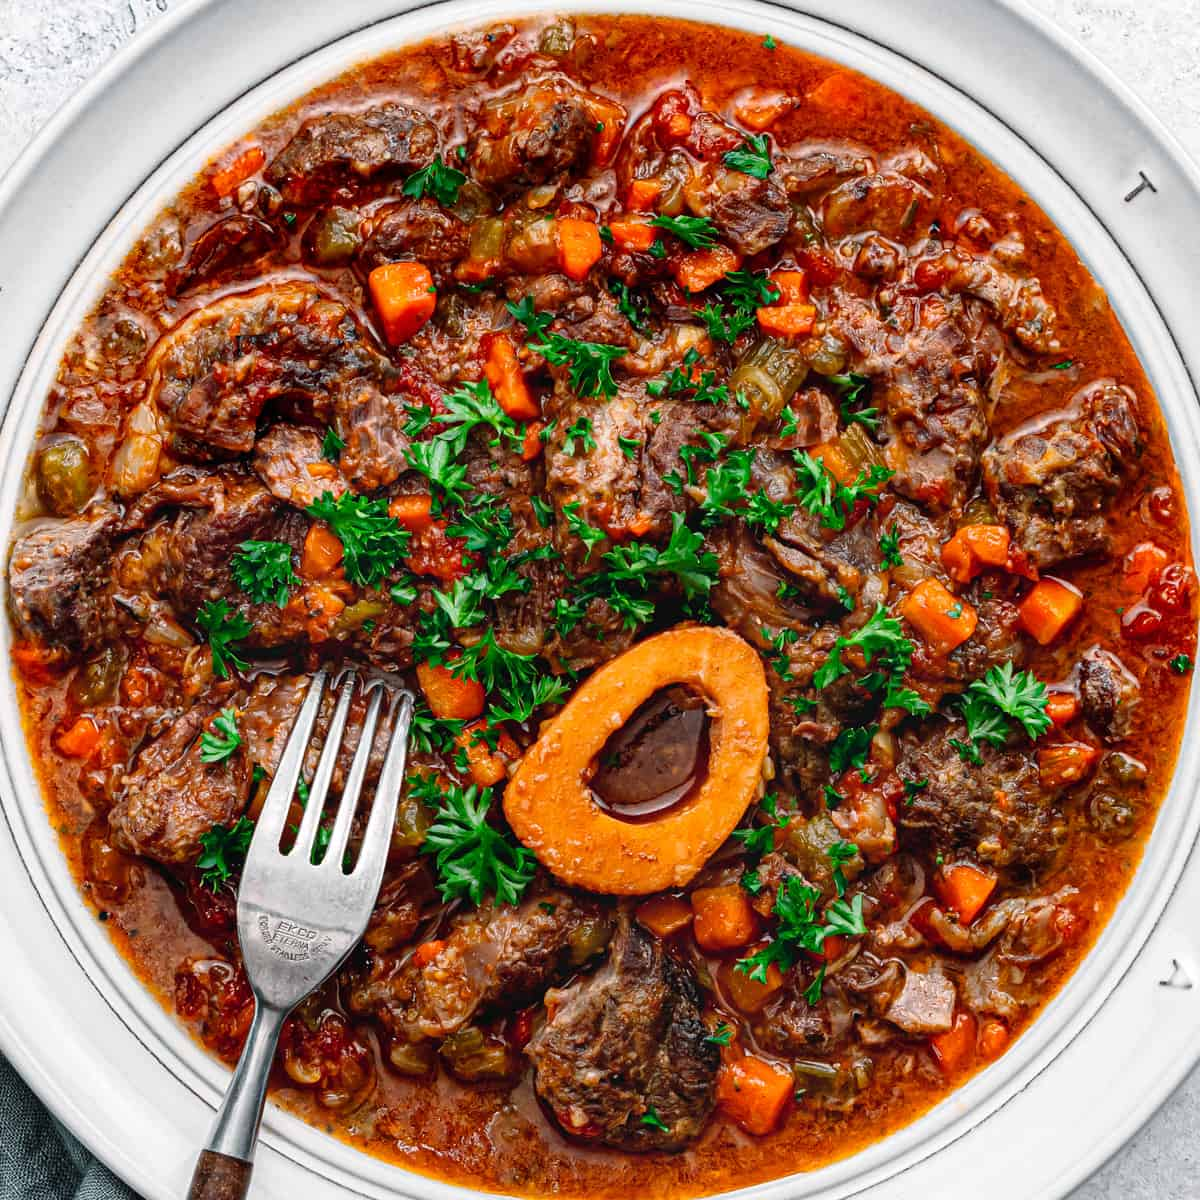 How to make Osso Buco in an Instant Pot